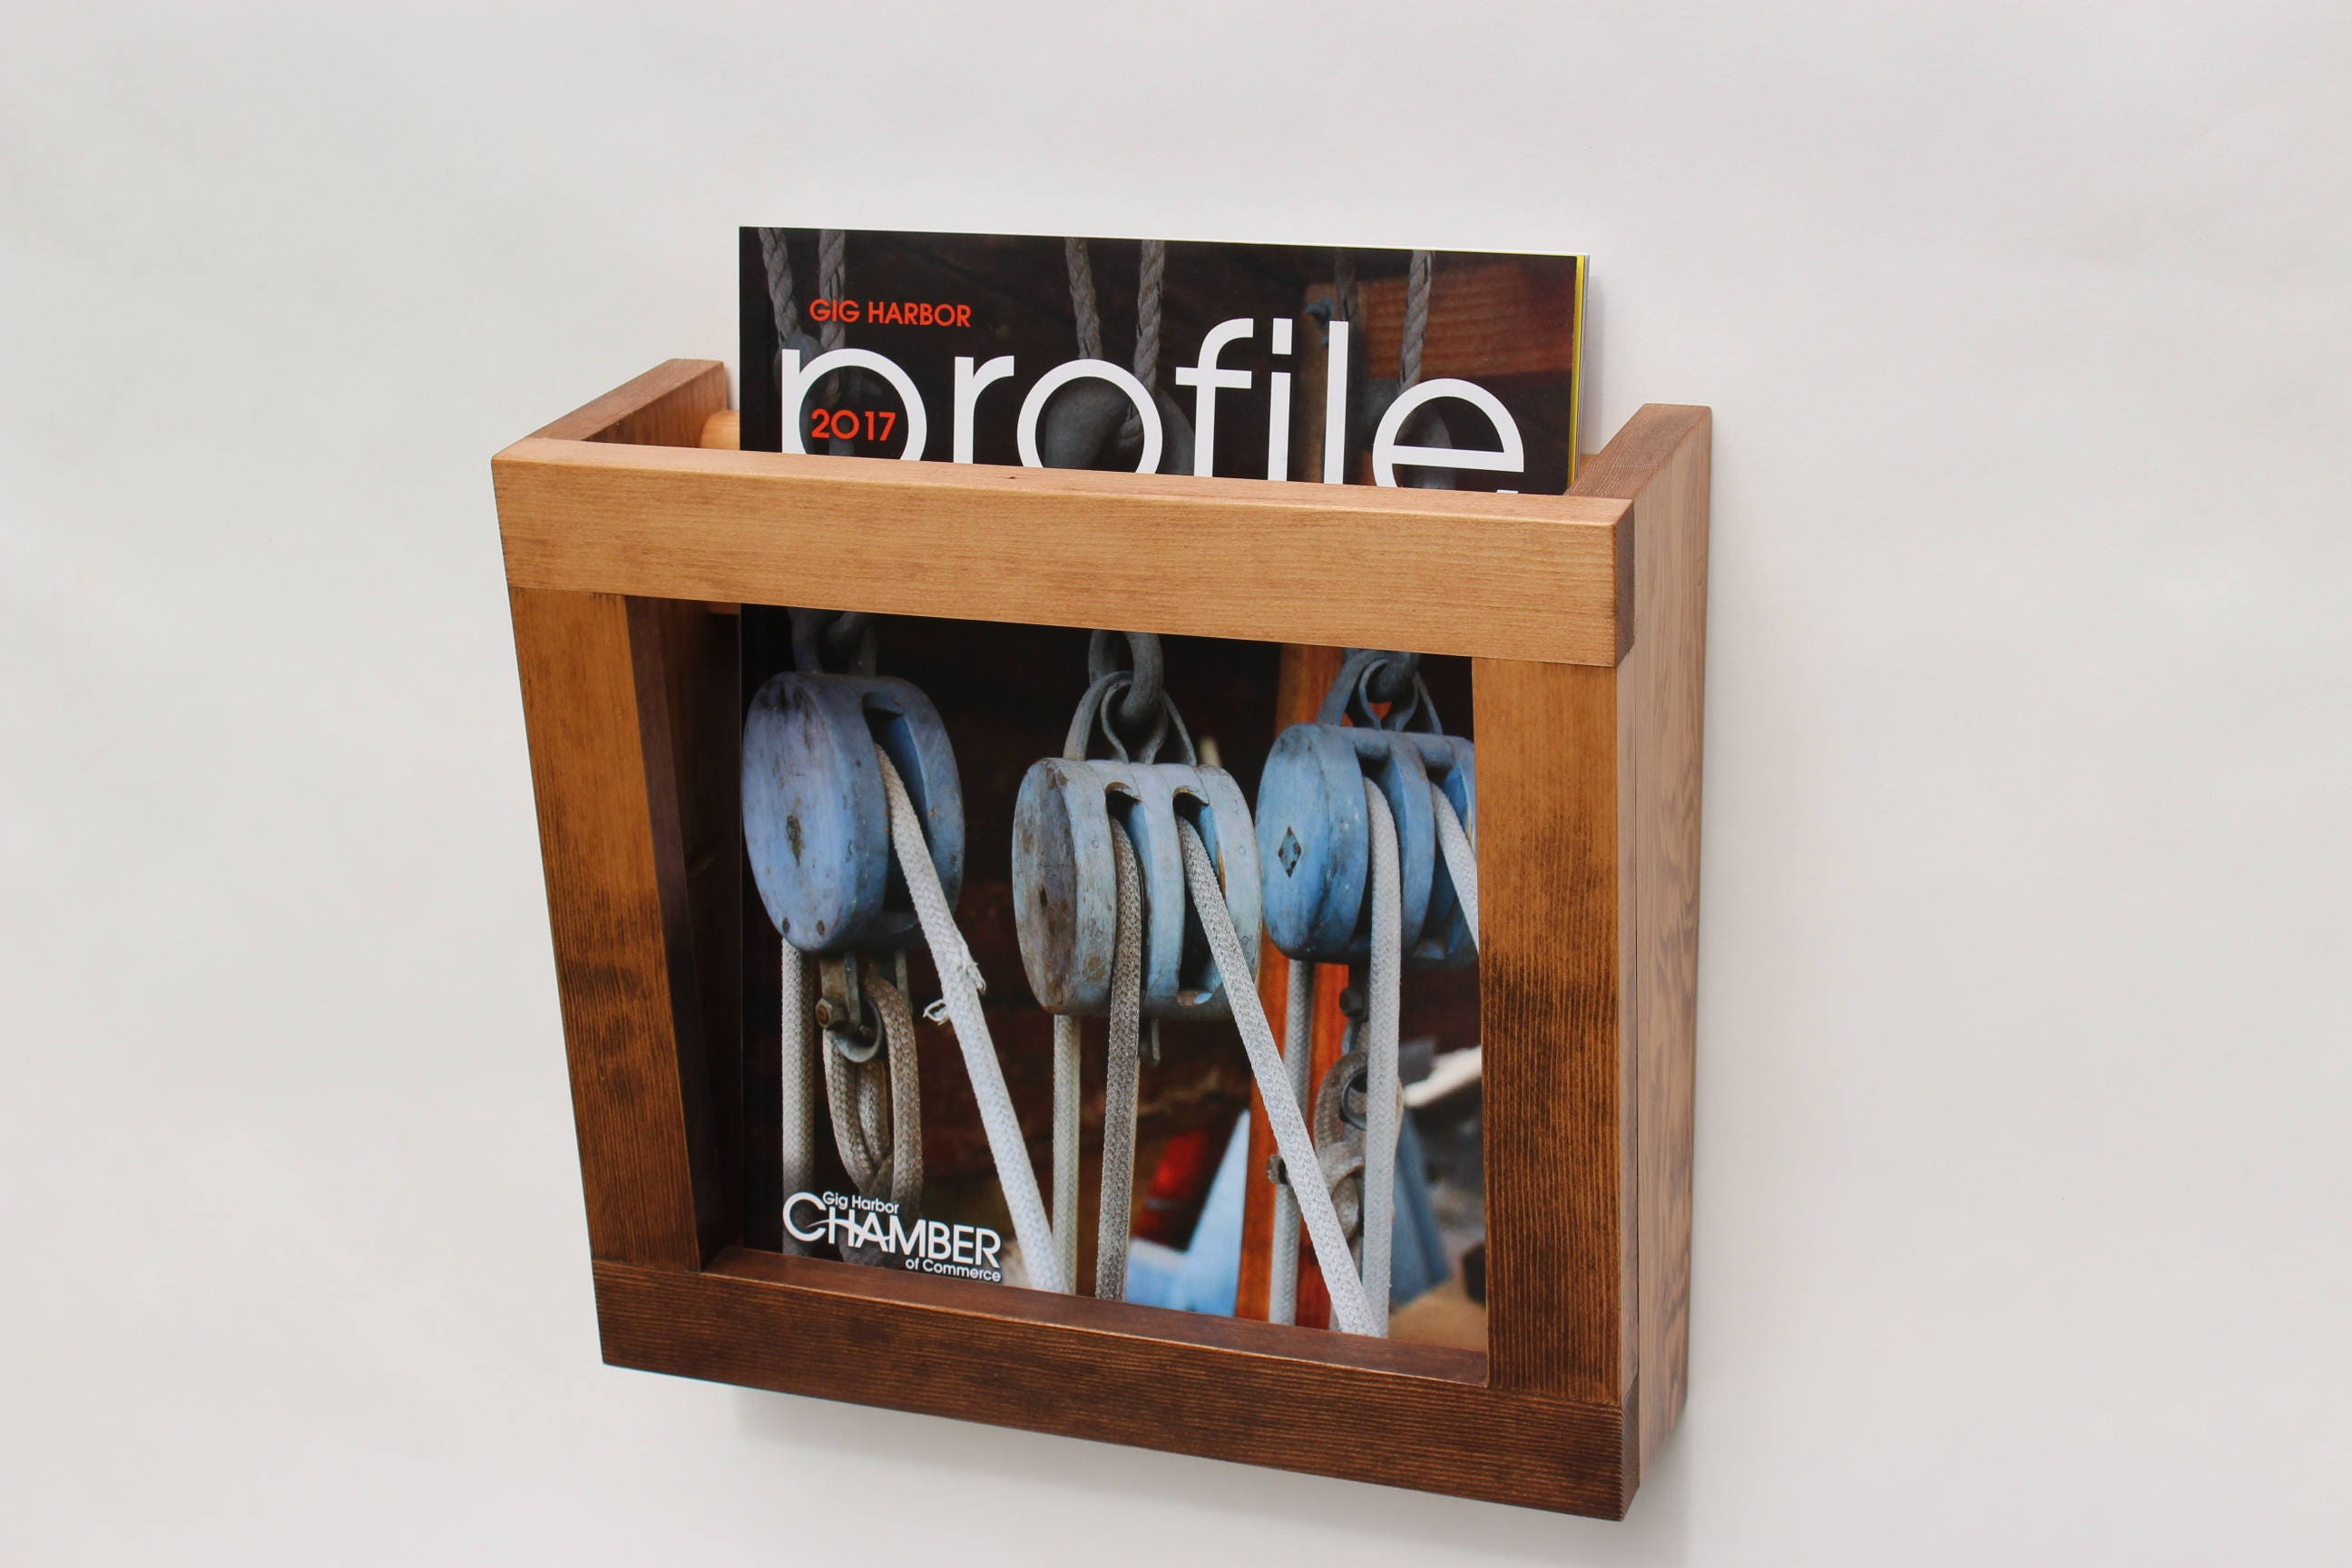 Wall Hanging Magazine Rack wall hanging wooden magazine rack modern minimalistic book